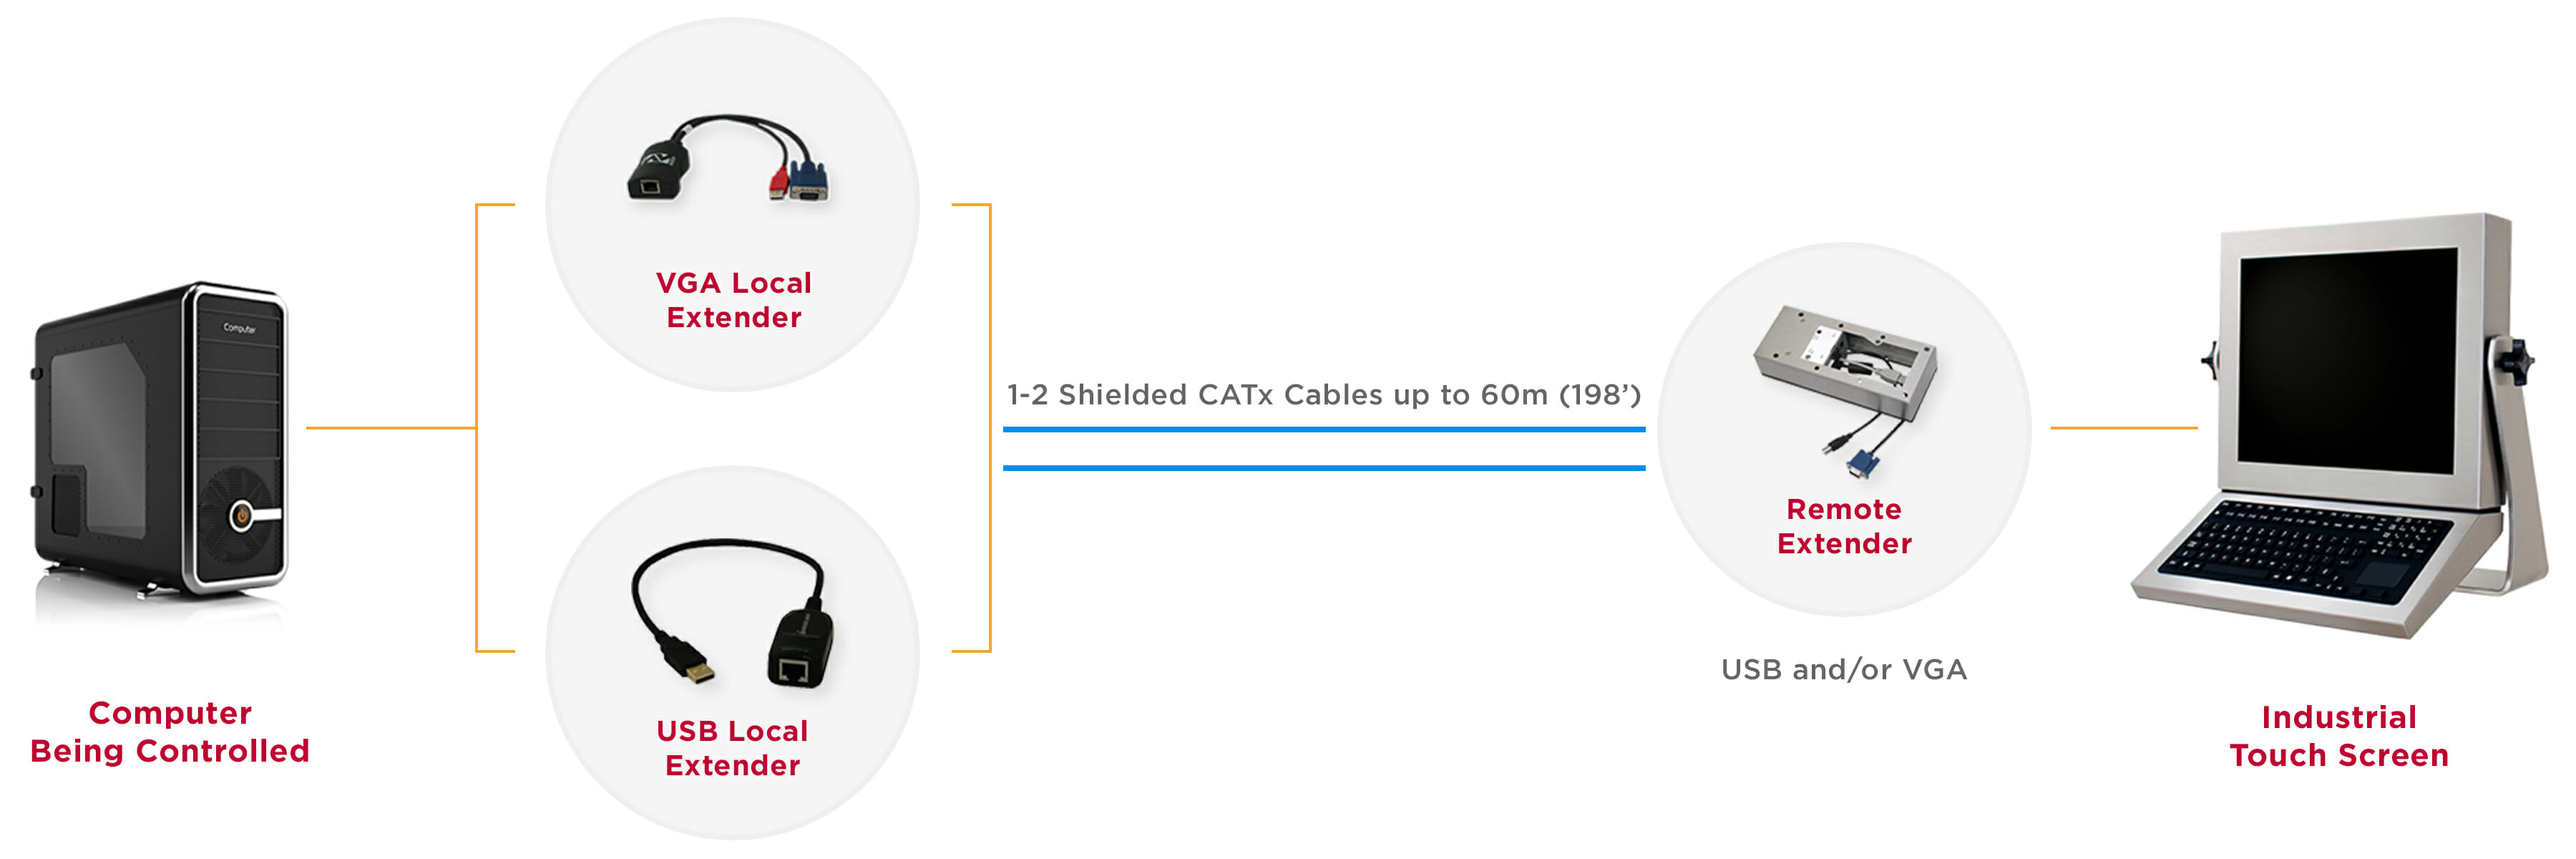 Industrial KVM Extender system diagram for 60 m (198') distance over shielded CATx cable